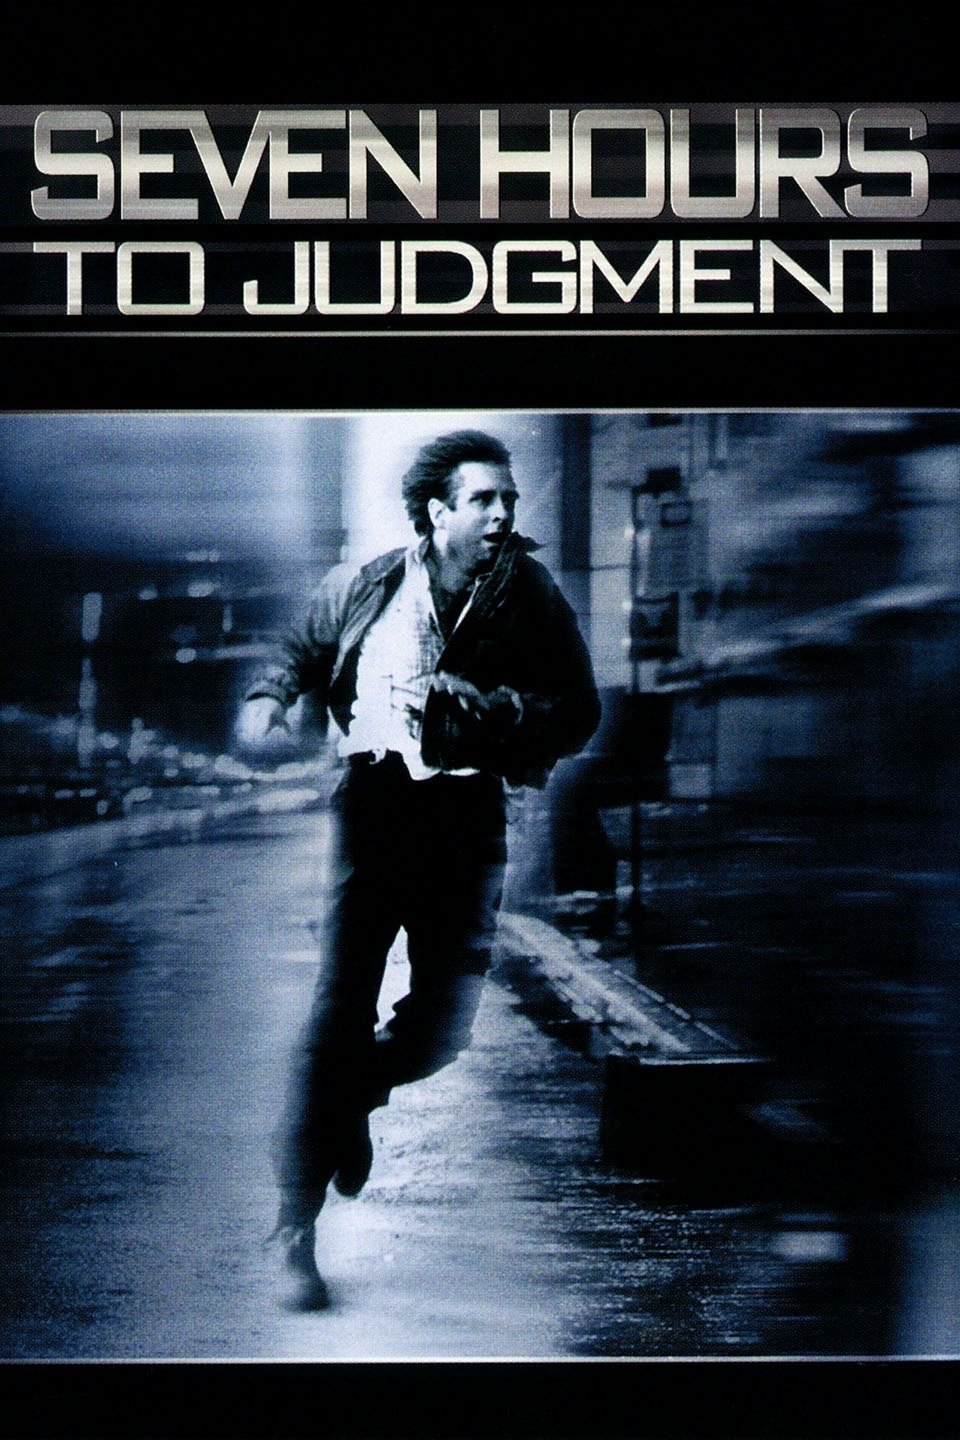 Seven Hours to Judgment (1988)